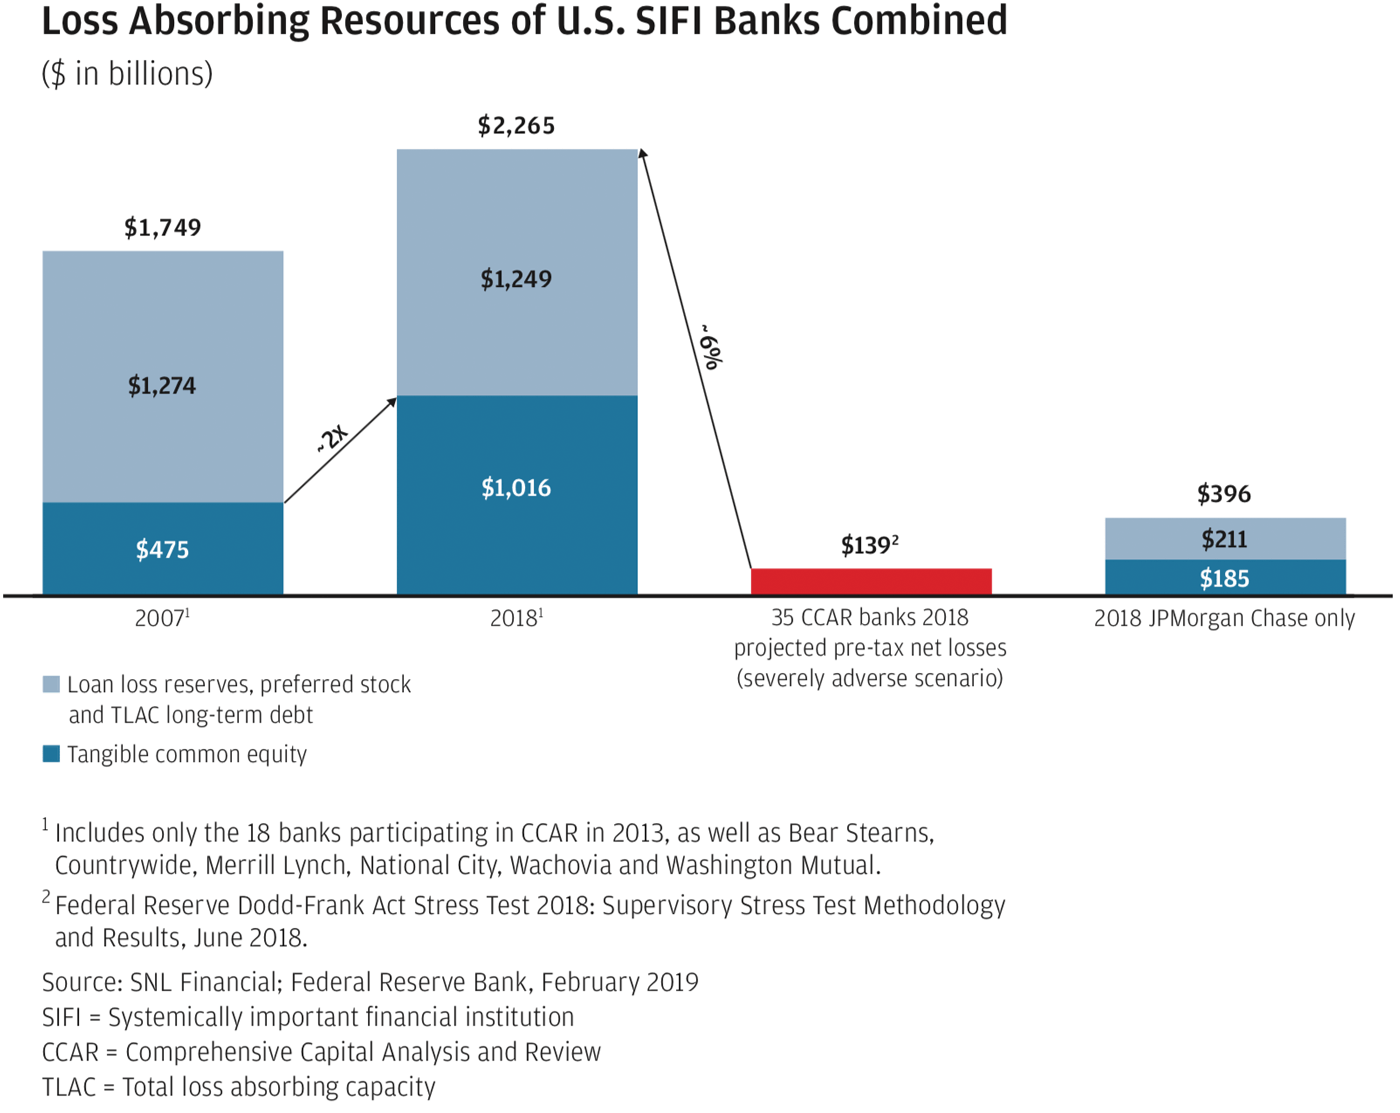 Loss Absorbing Resources of U.S. SIFI Banks Combined graph